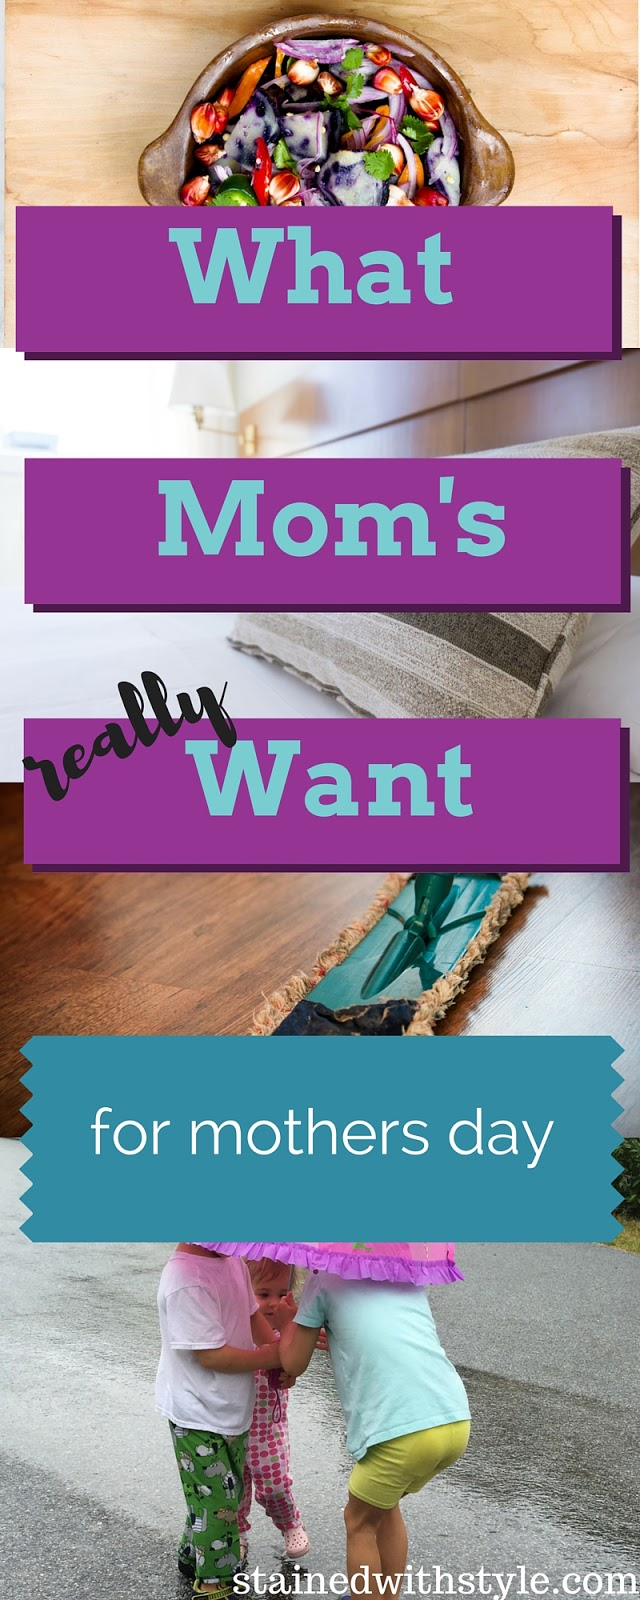 Mothers Day Ideas.  Things we really want